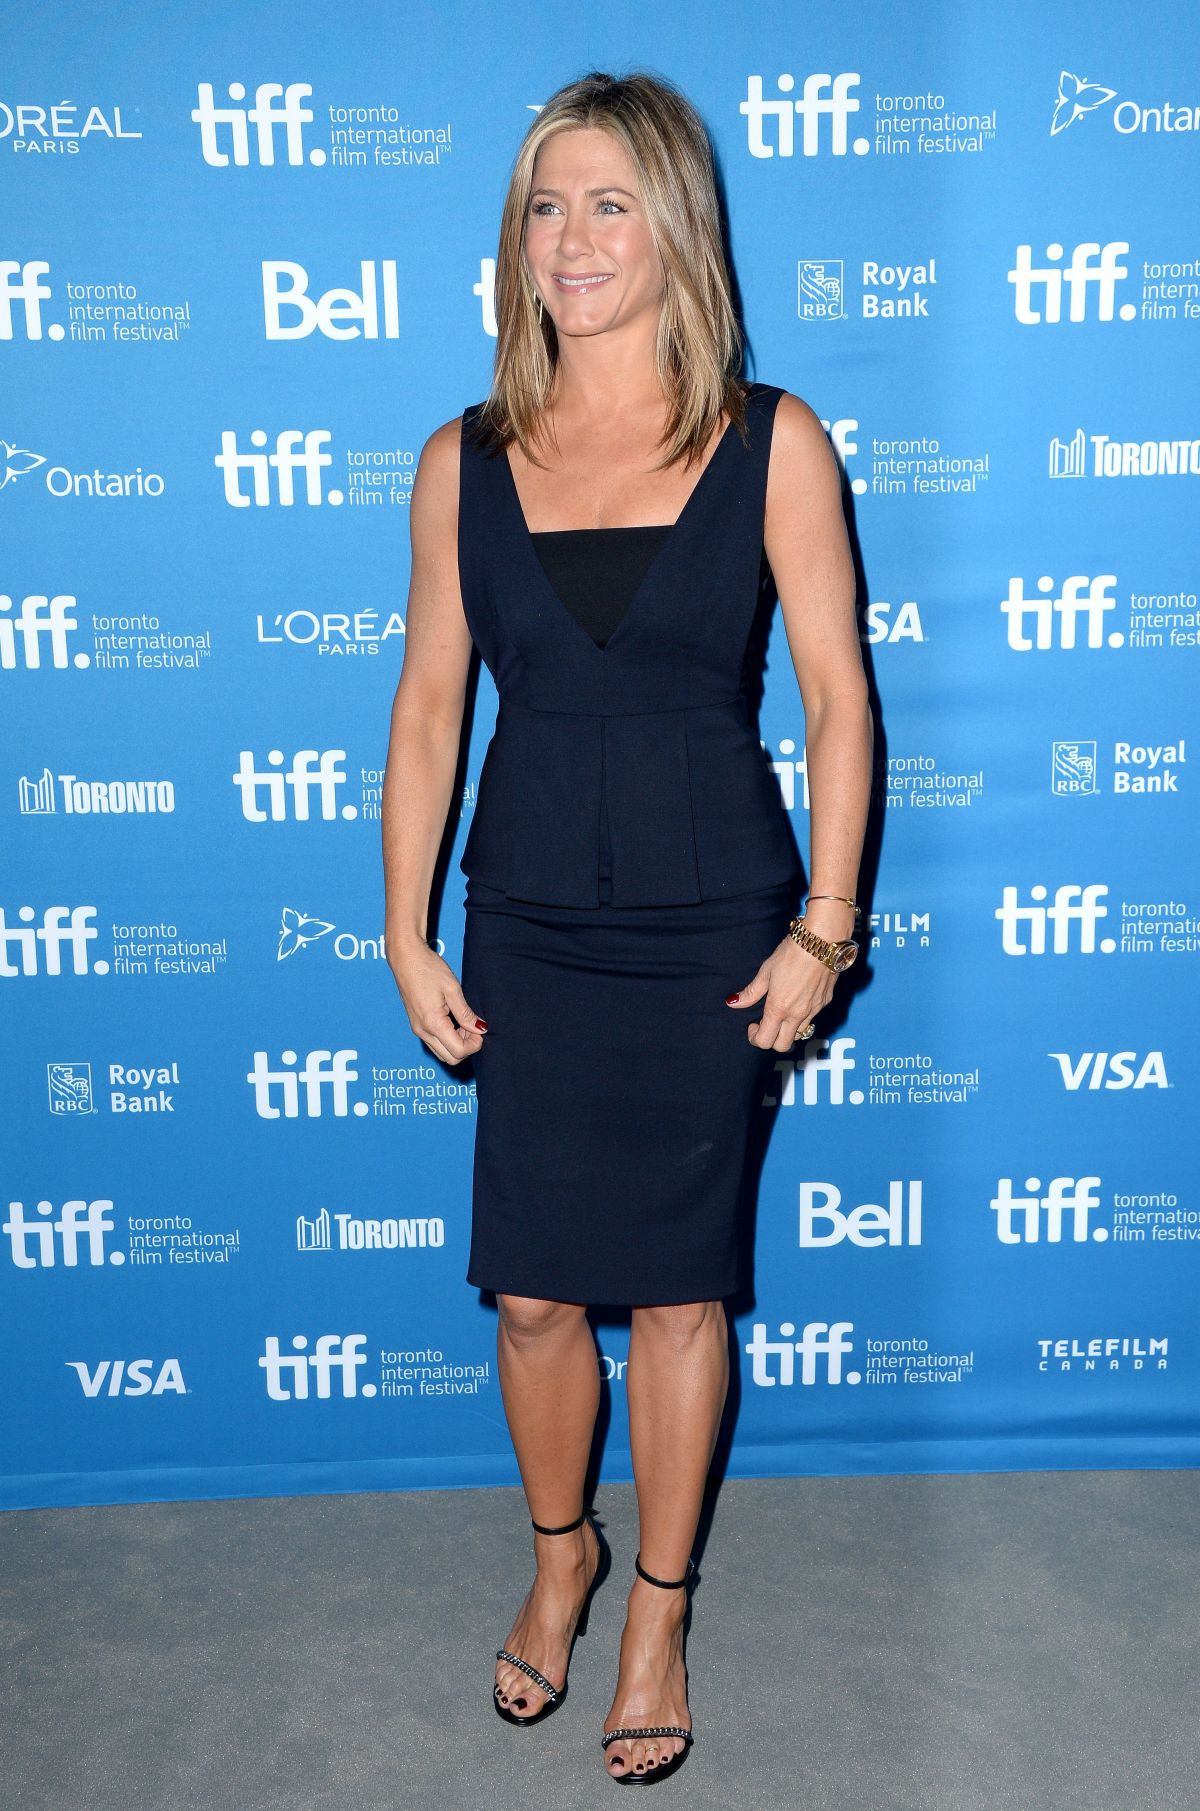 JENNIFER ANISTON at The Imitation Game Press Conference in Toronto